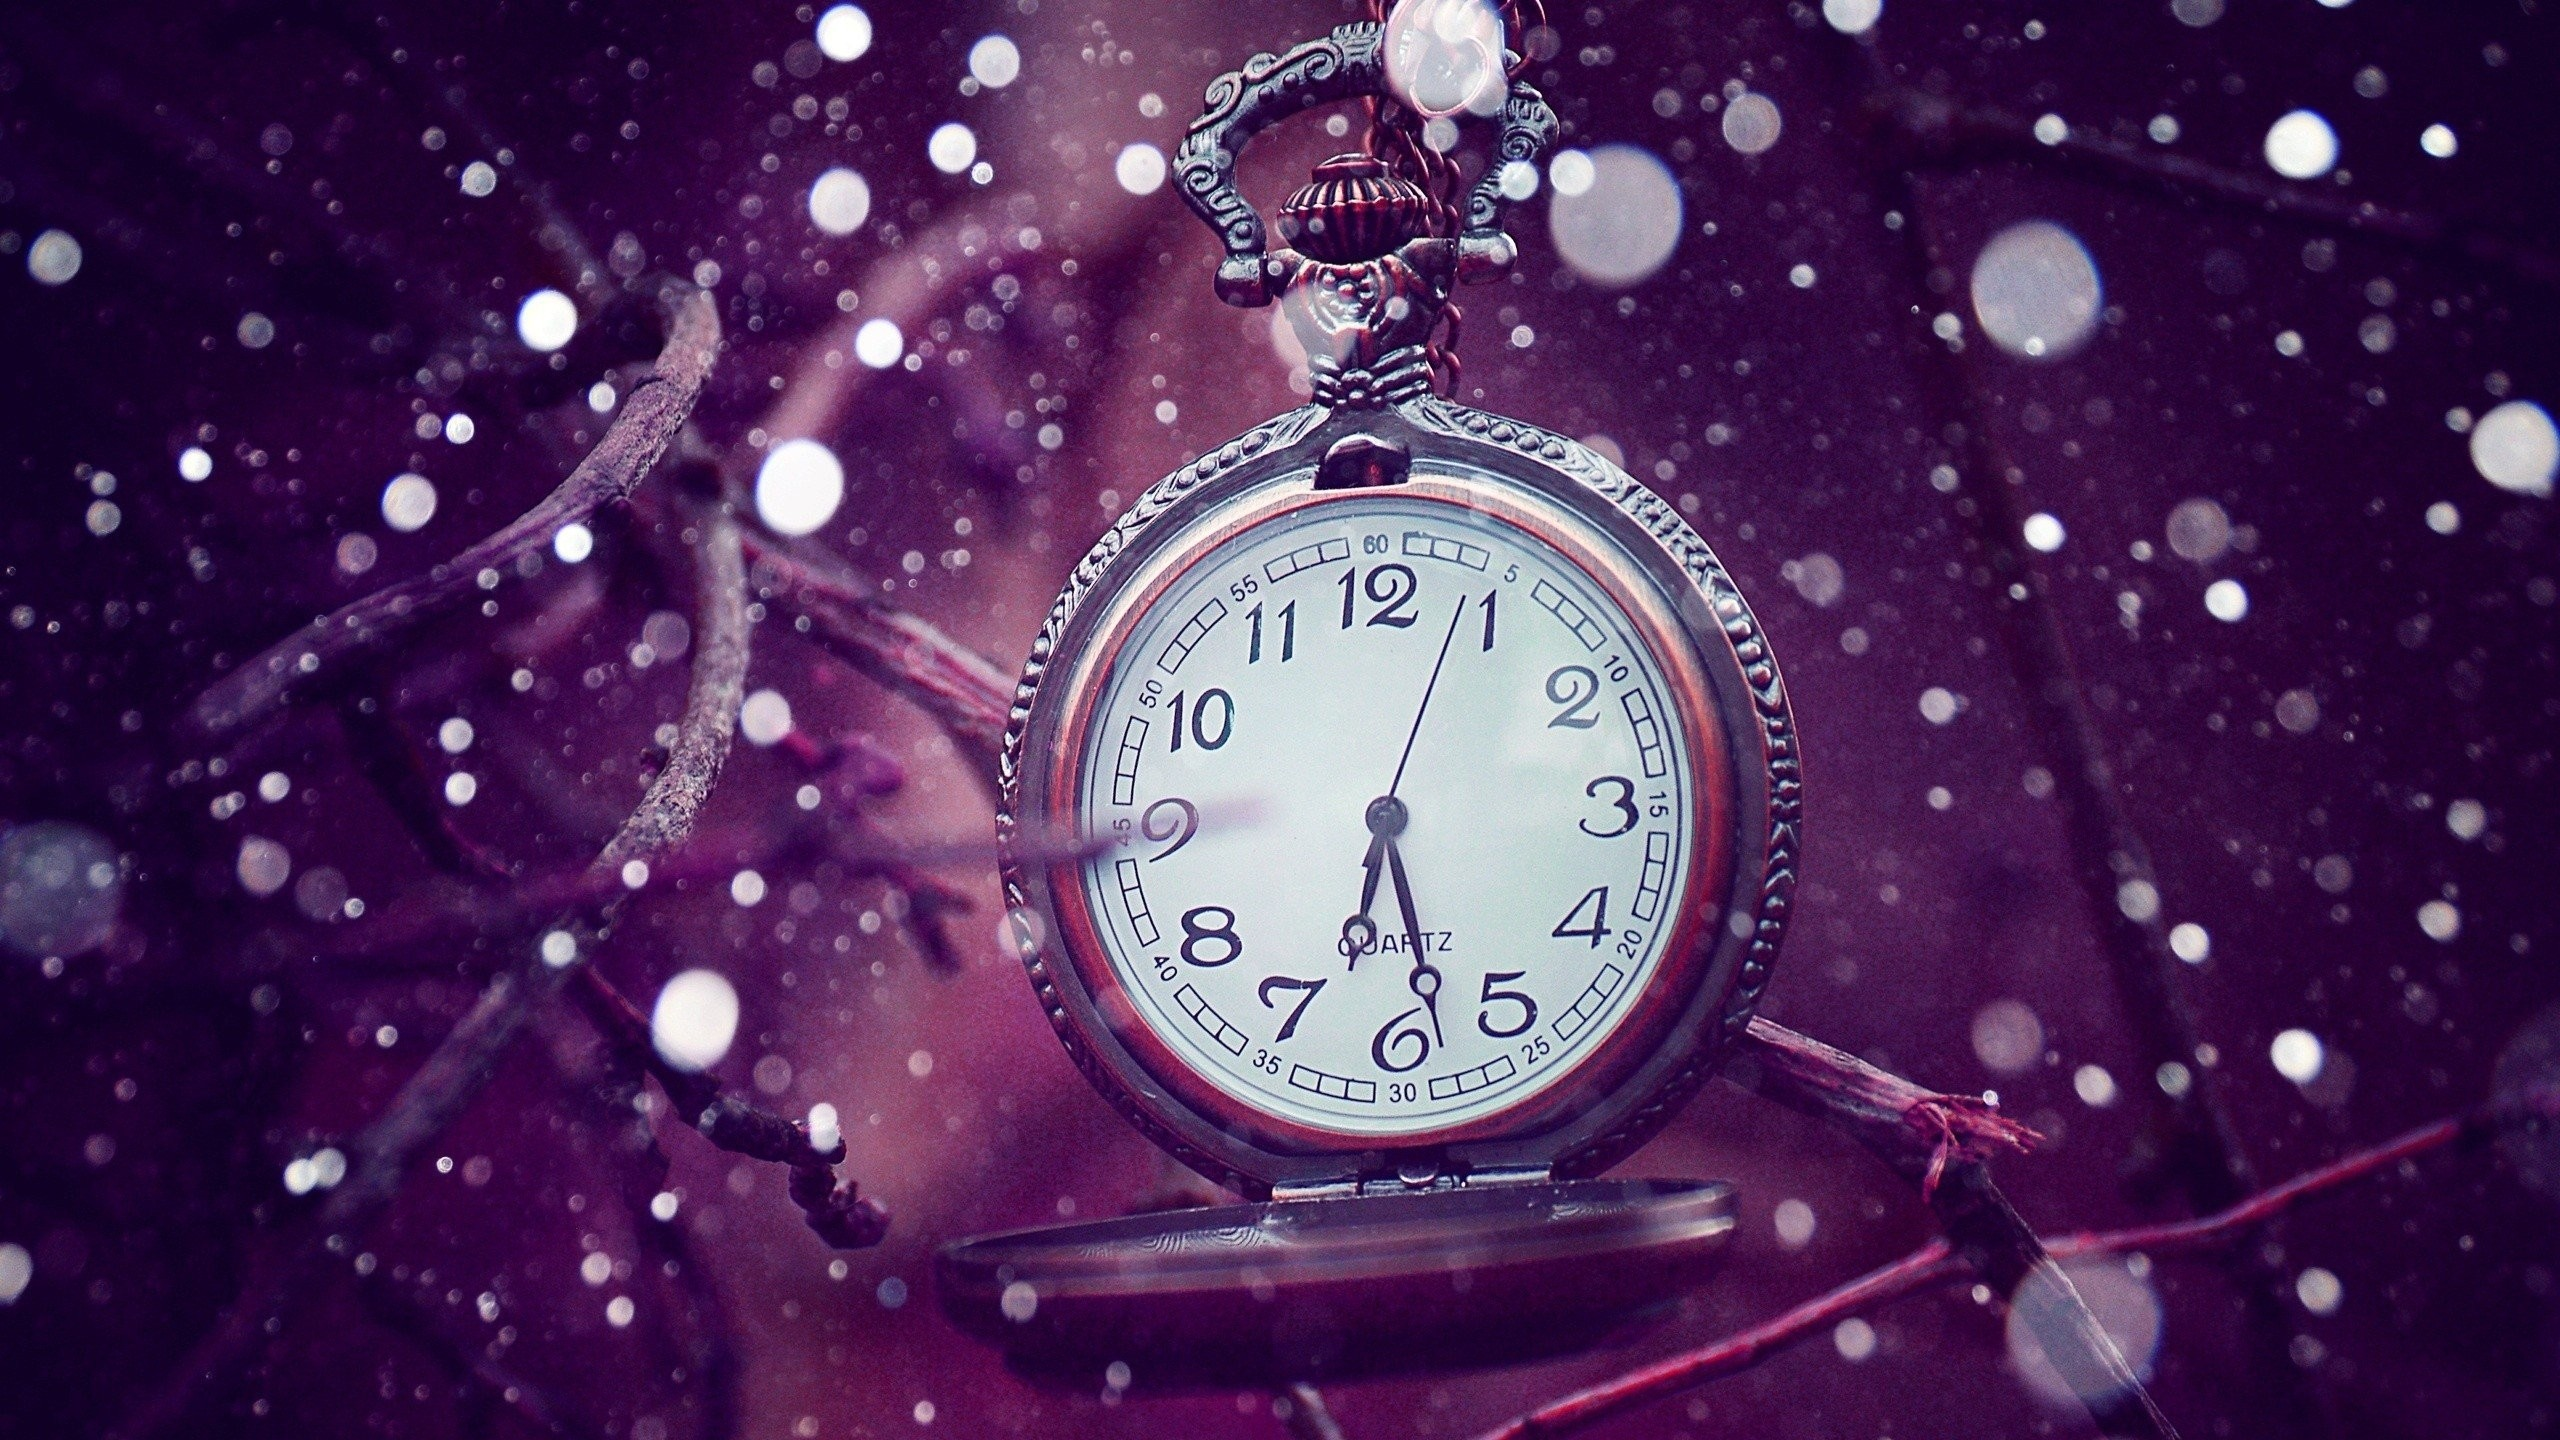 snow falling wallpaper photo with high resolution wallpaper on other  category similar with 3d animated at